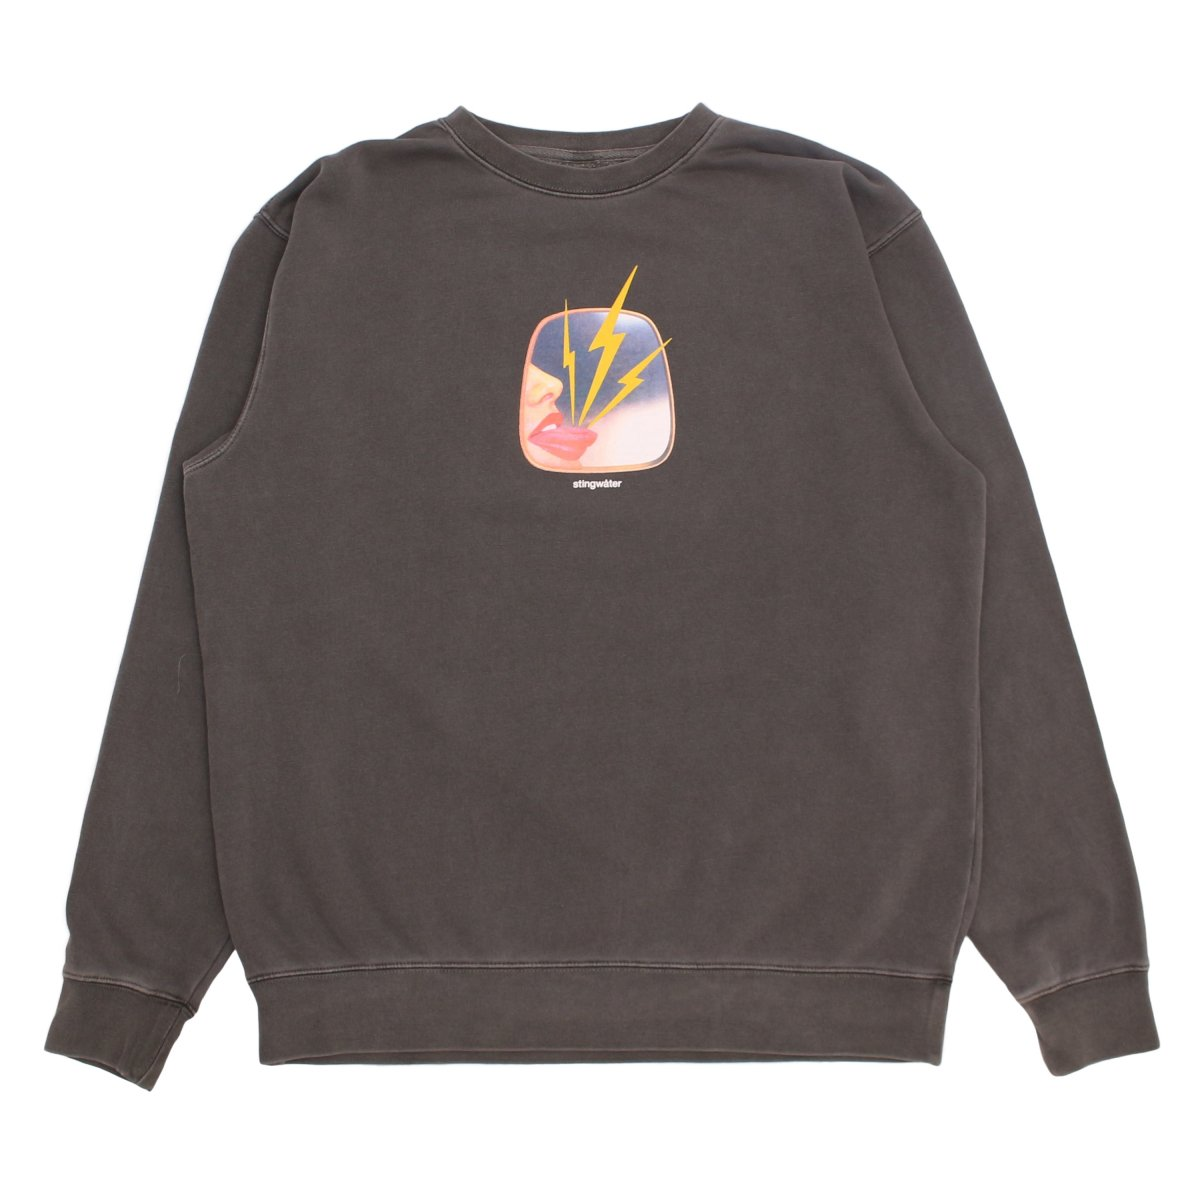 It stings the face Sweatshirt (pigment dyed)